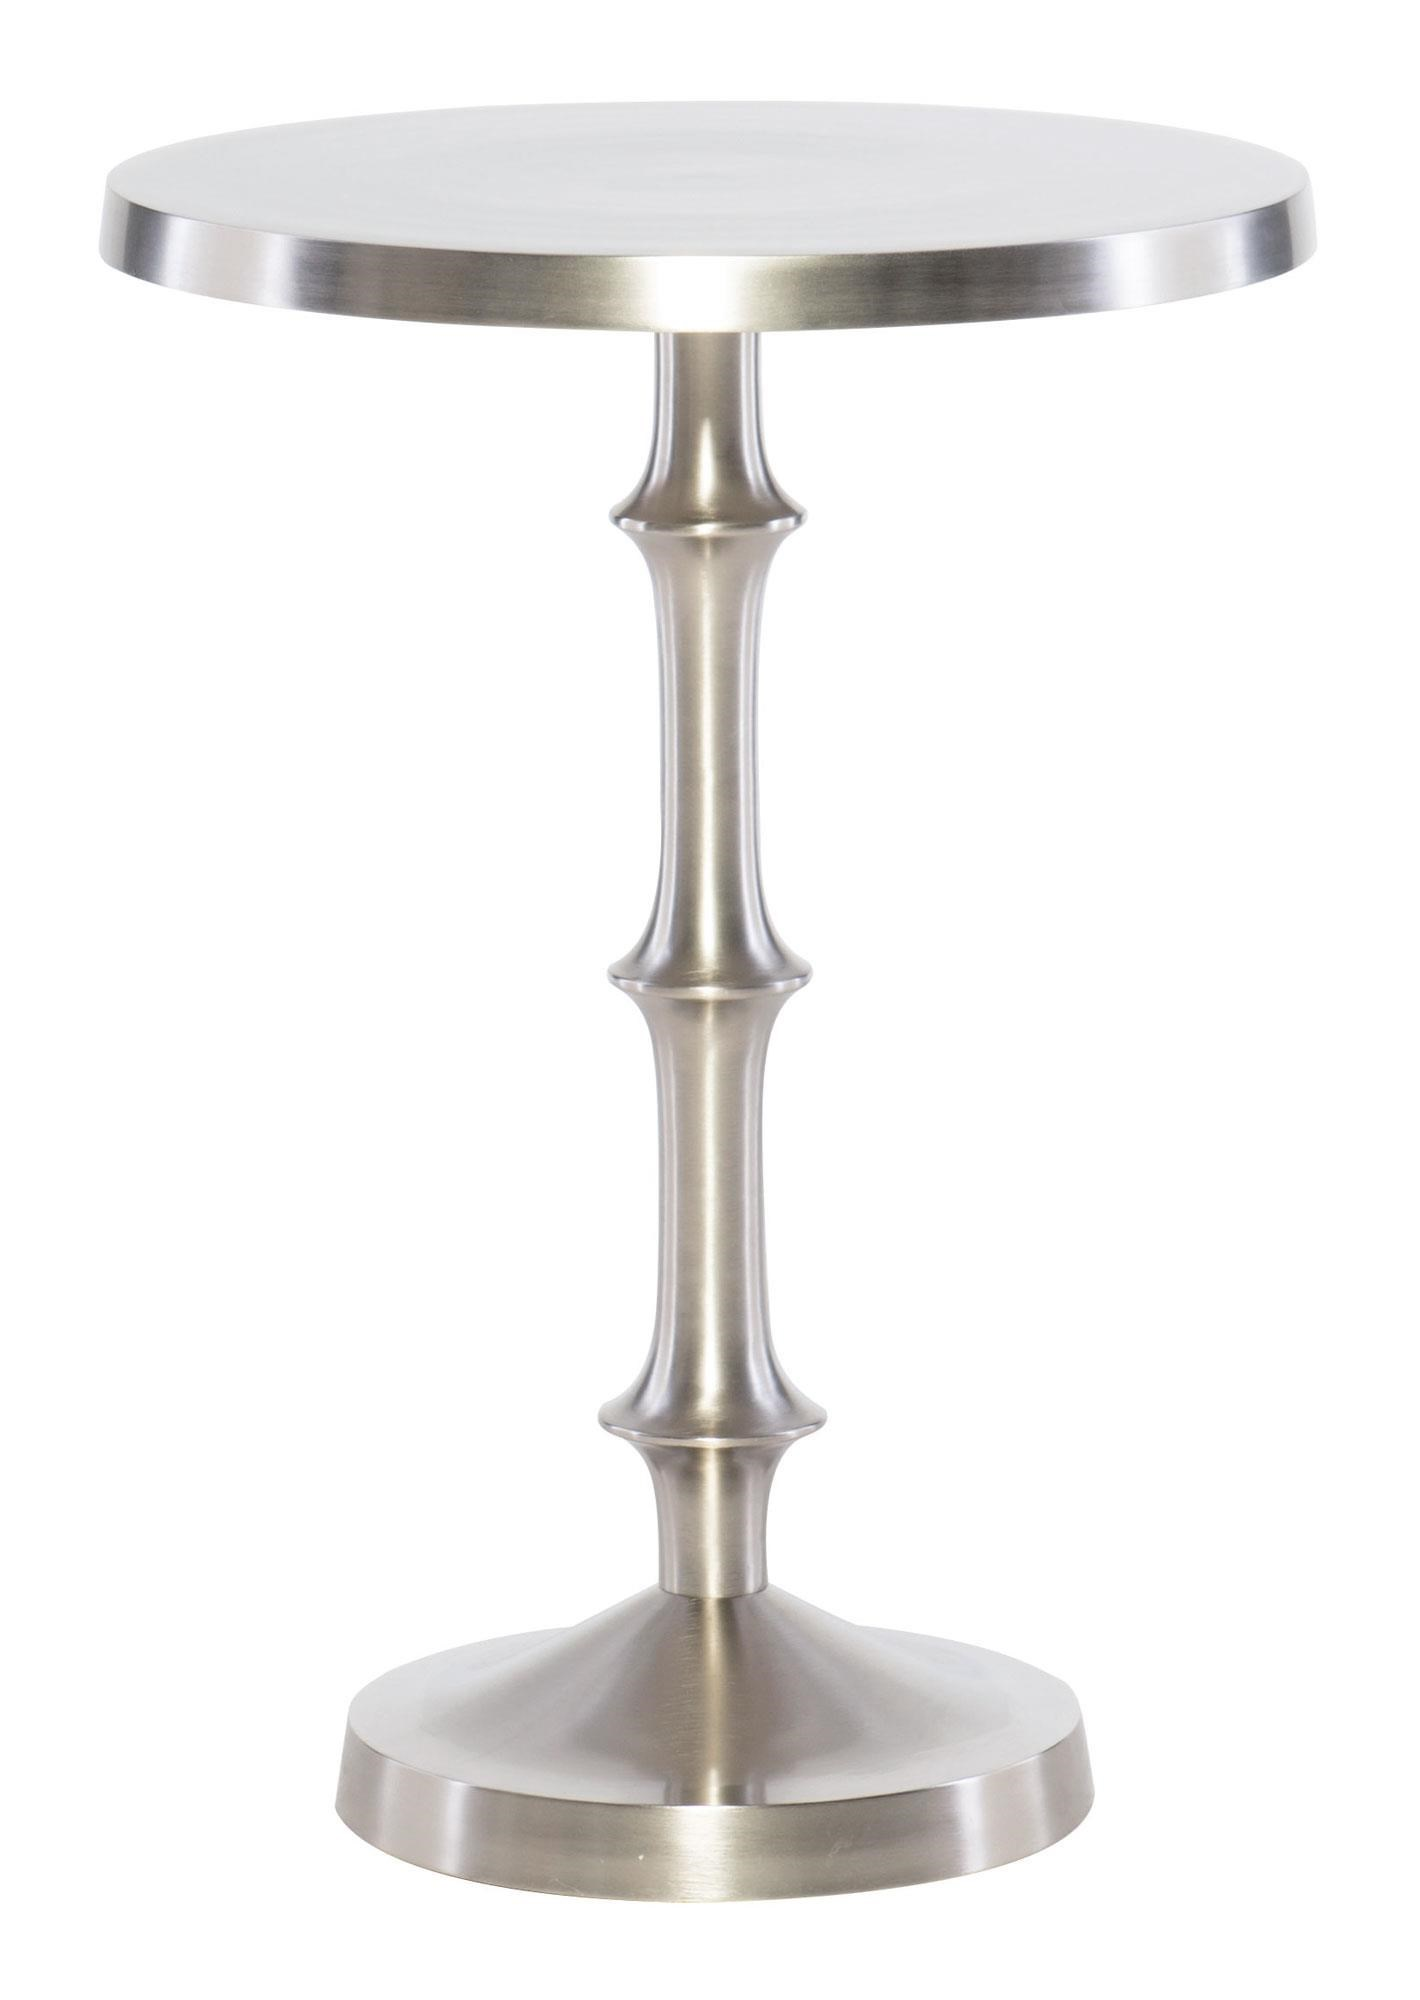 Templeton Templeton Chairside Table by Bernhardt at Morris Home